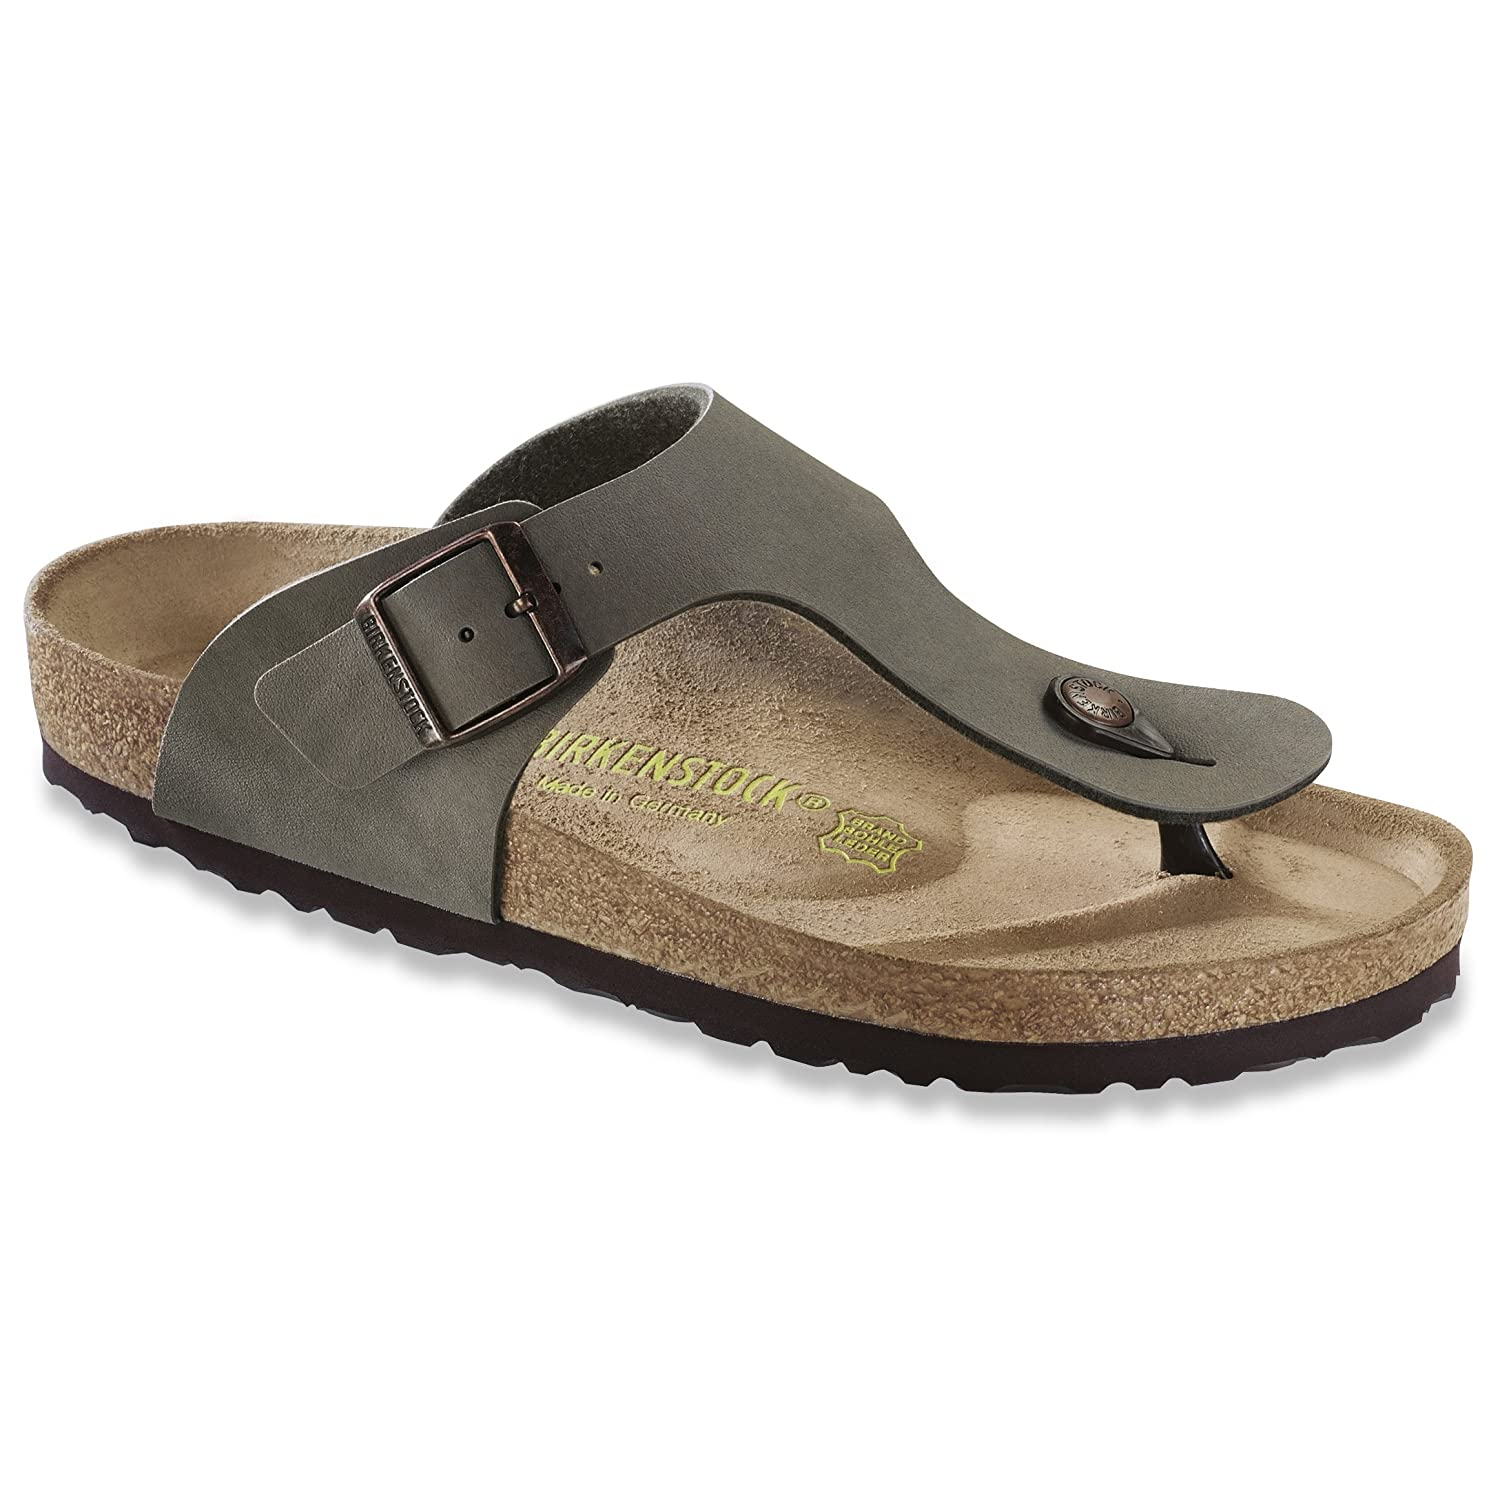 417ef3f4f77b Birkenstock Ramses Mens Toe Post Sandals (10 UK) (Stone)  Buy Online at Low  Prices in India - Amazon.in